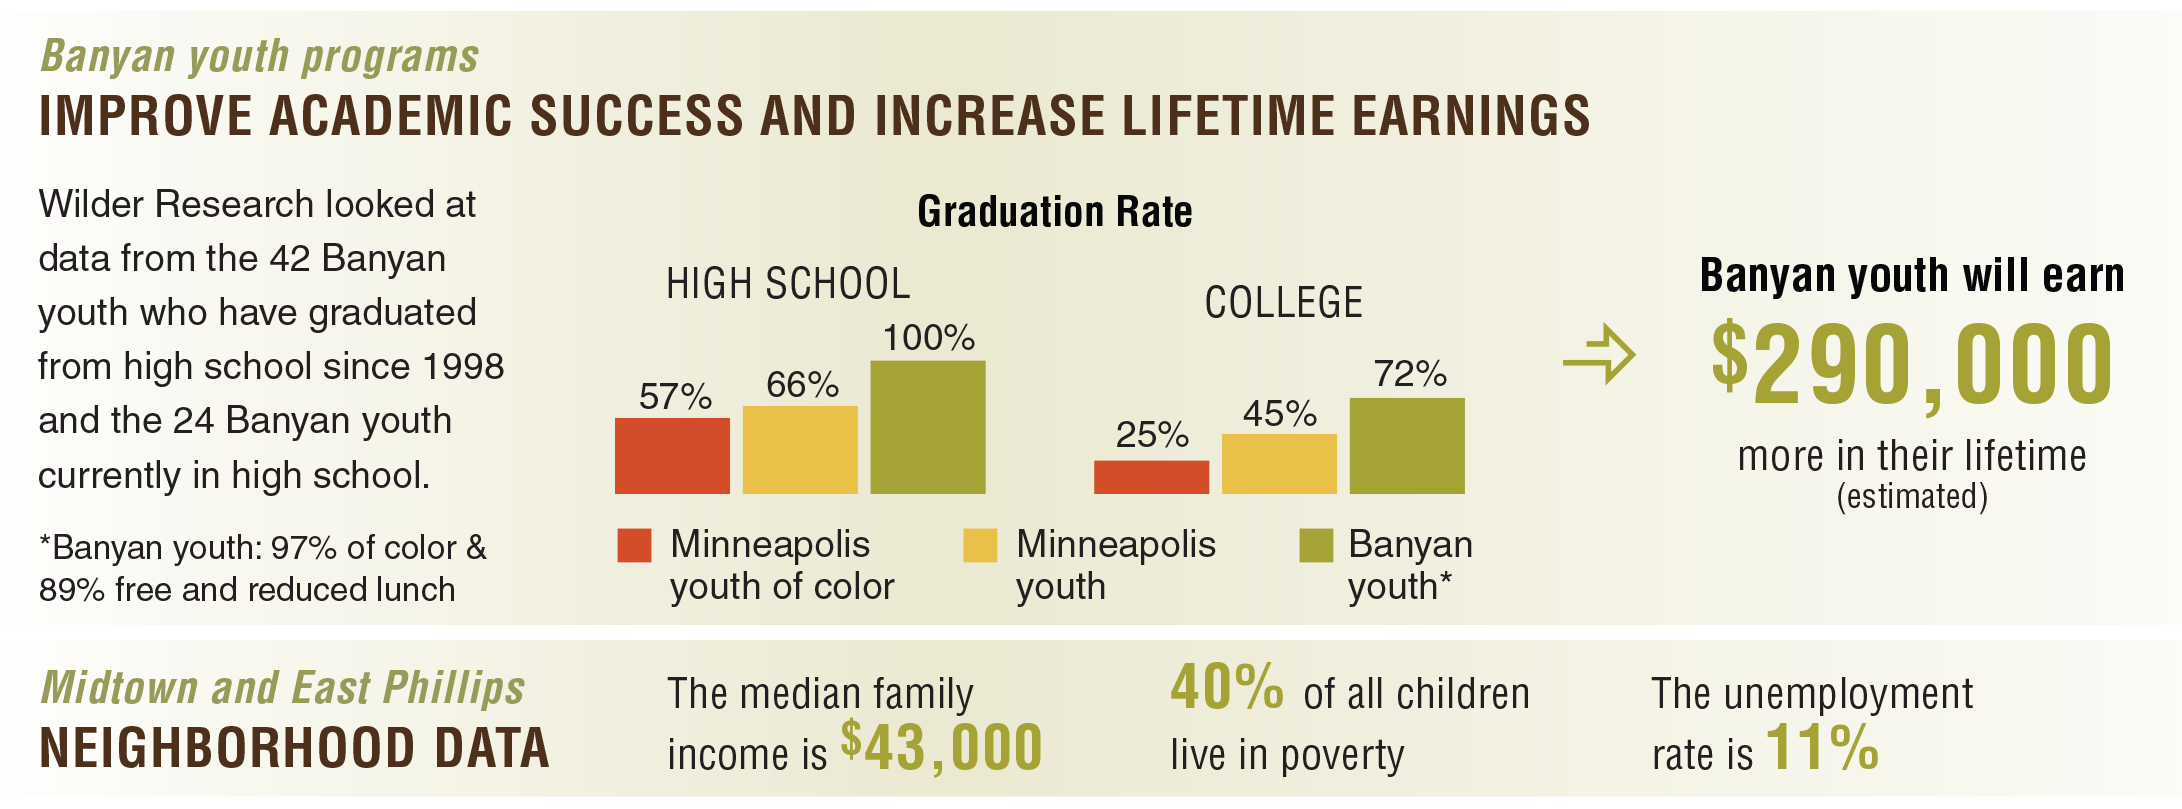 Banyan youth program chart showing graduation rate and average lifetime earnings of Banyan participants